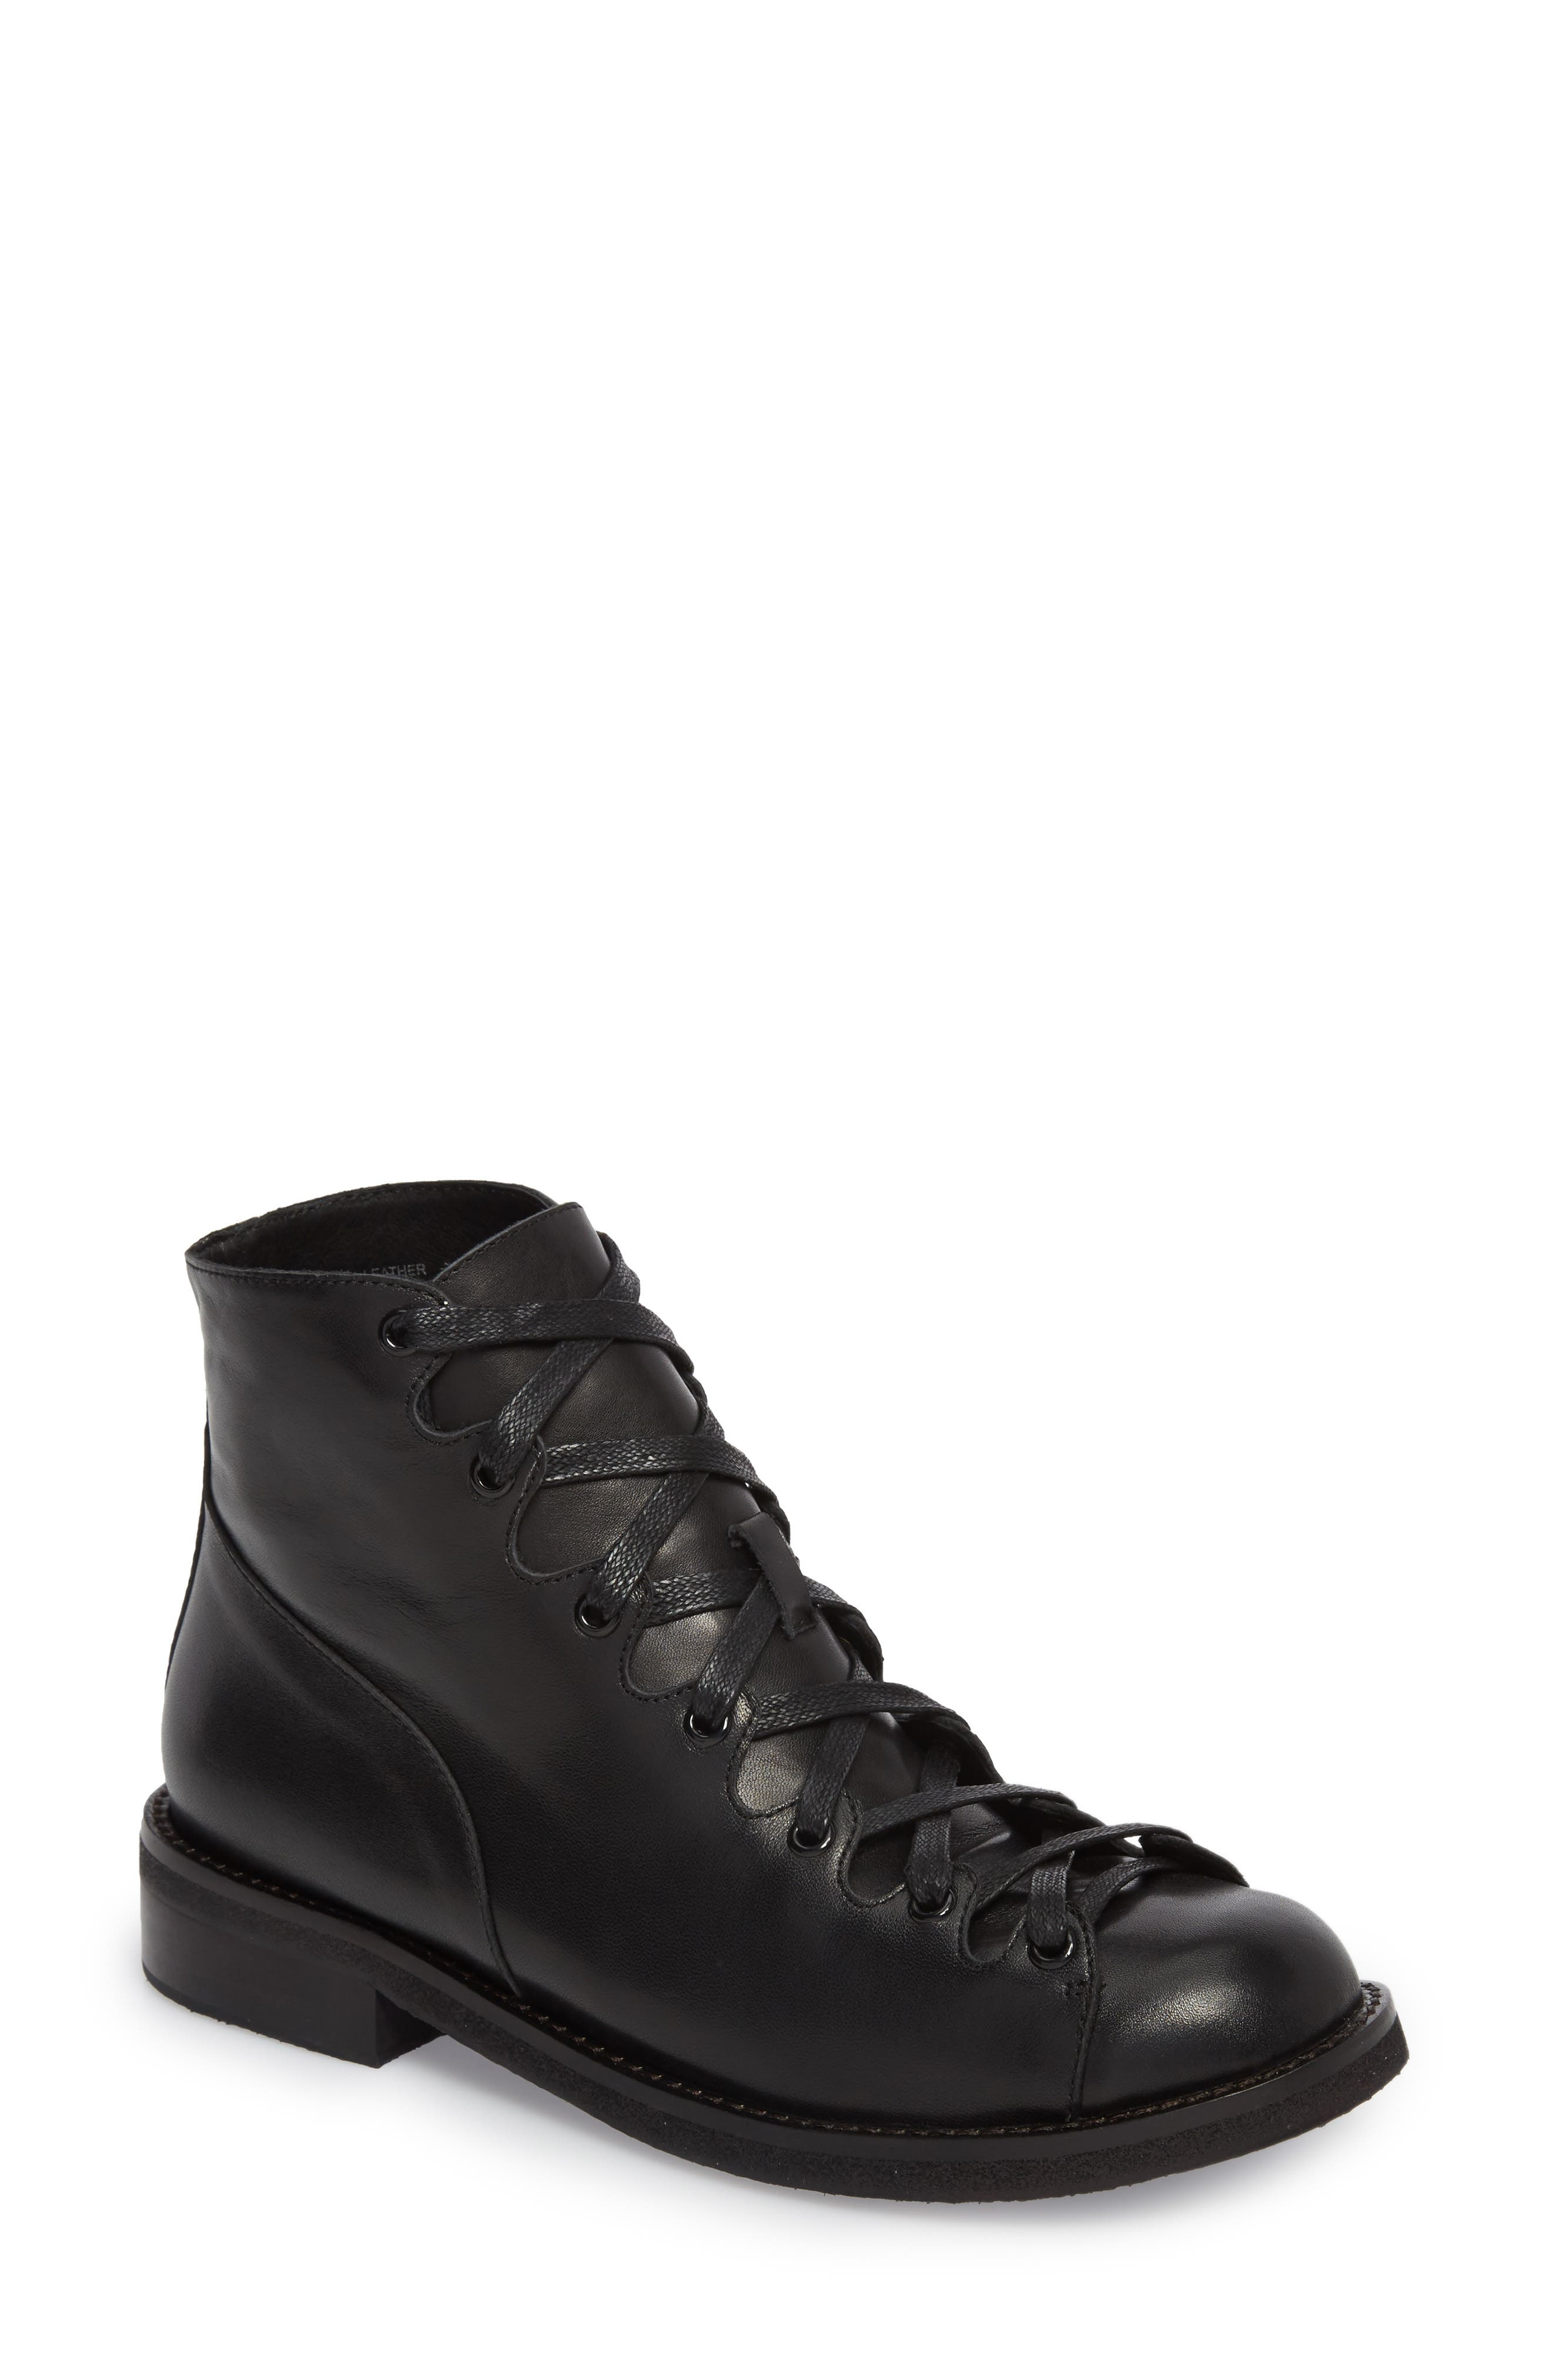 Jess Ghillie Combat Boot,                         Main,                         color, Black Leather